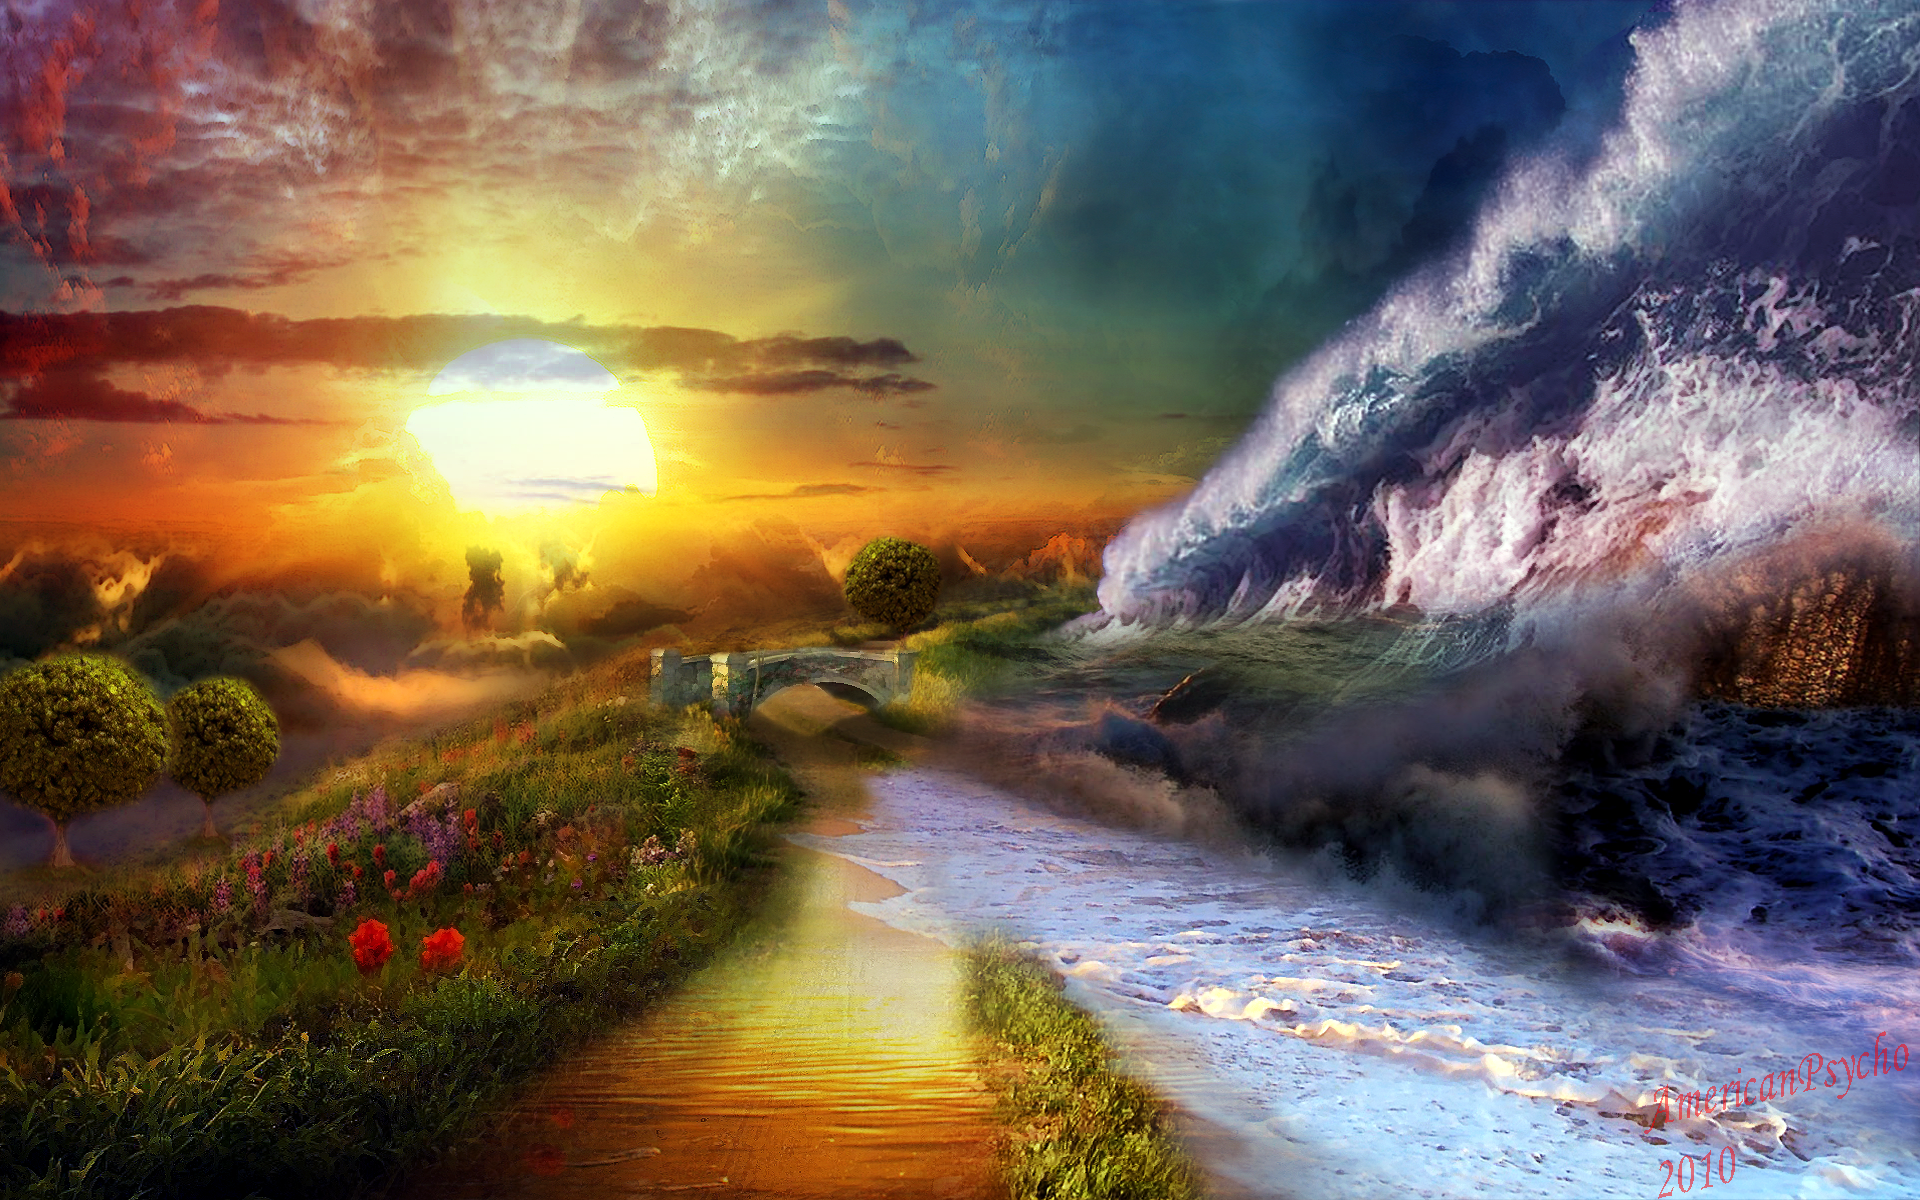 Lscapes Dreams HD wallpapers 1920x1200